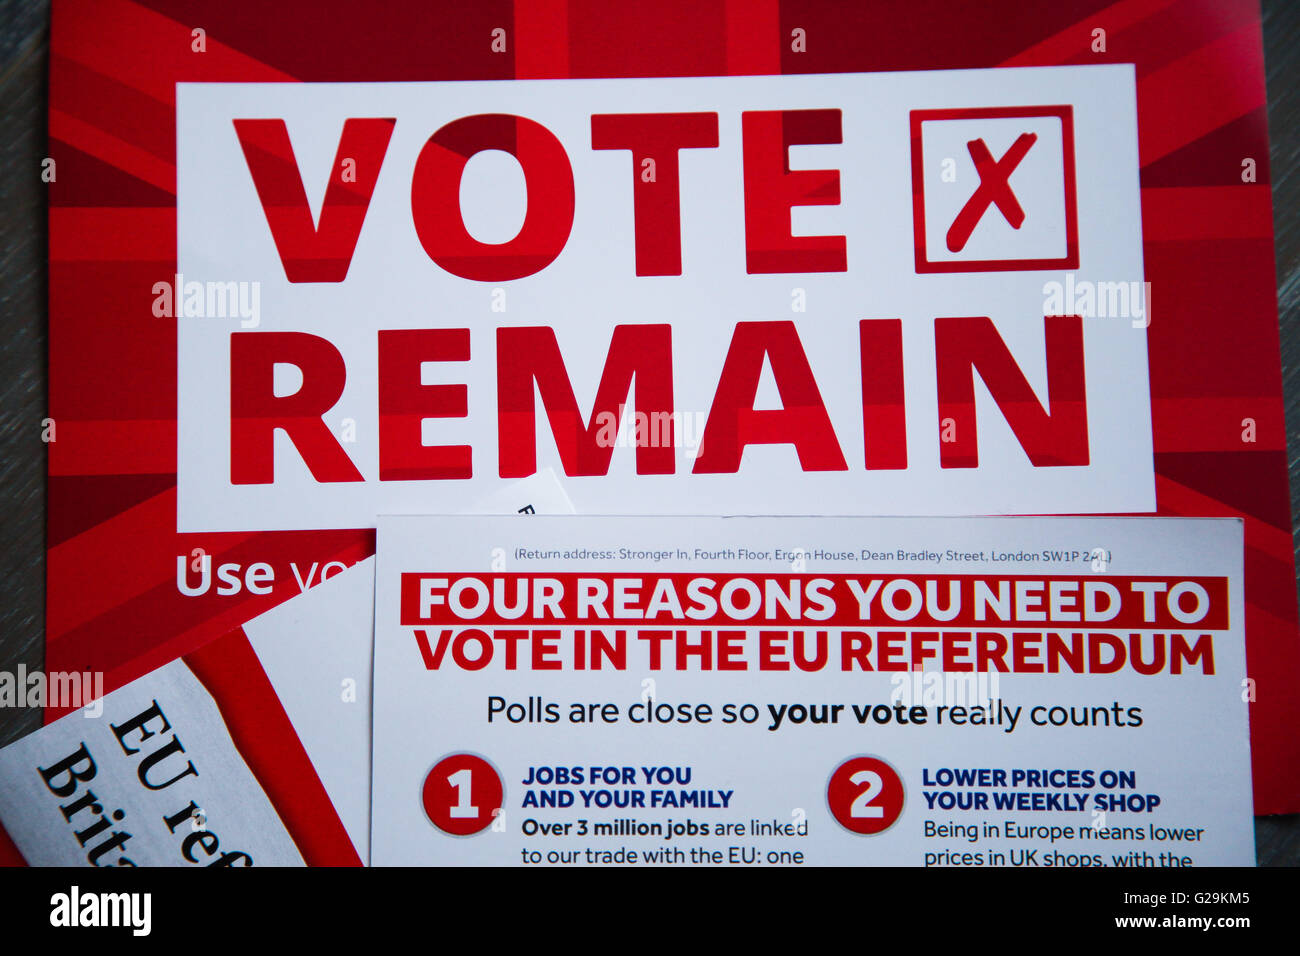 Vote Remain Stock Photos & Vote Remain Stock Images - Alamy